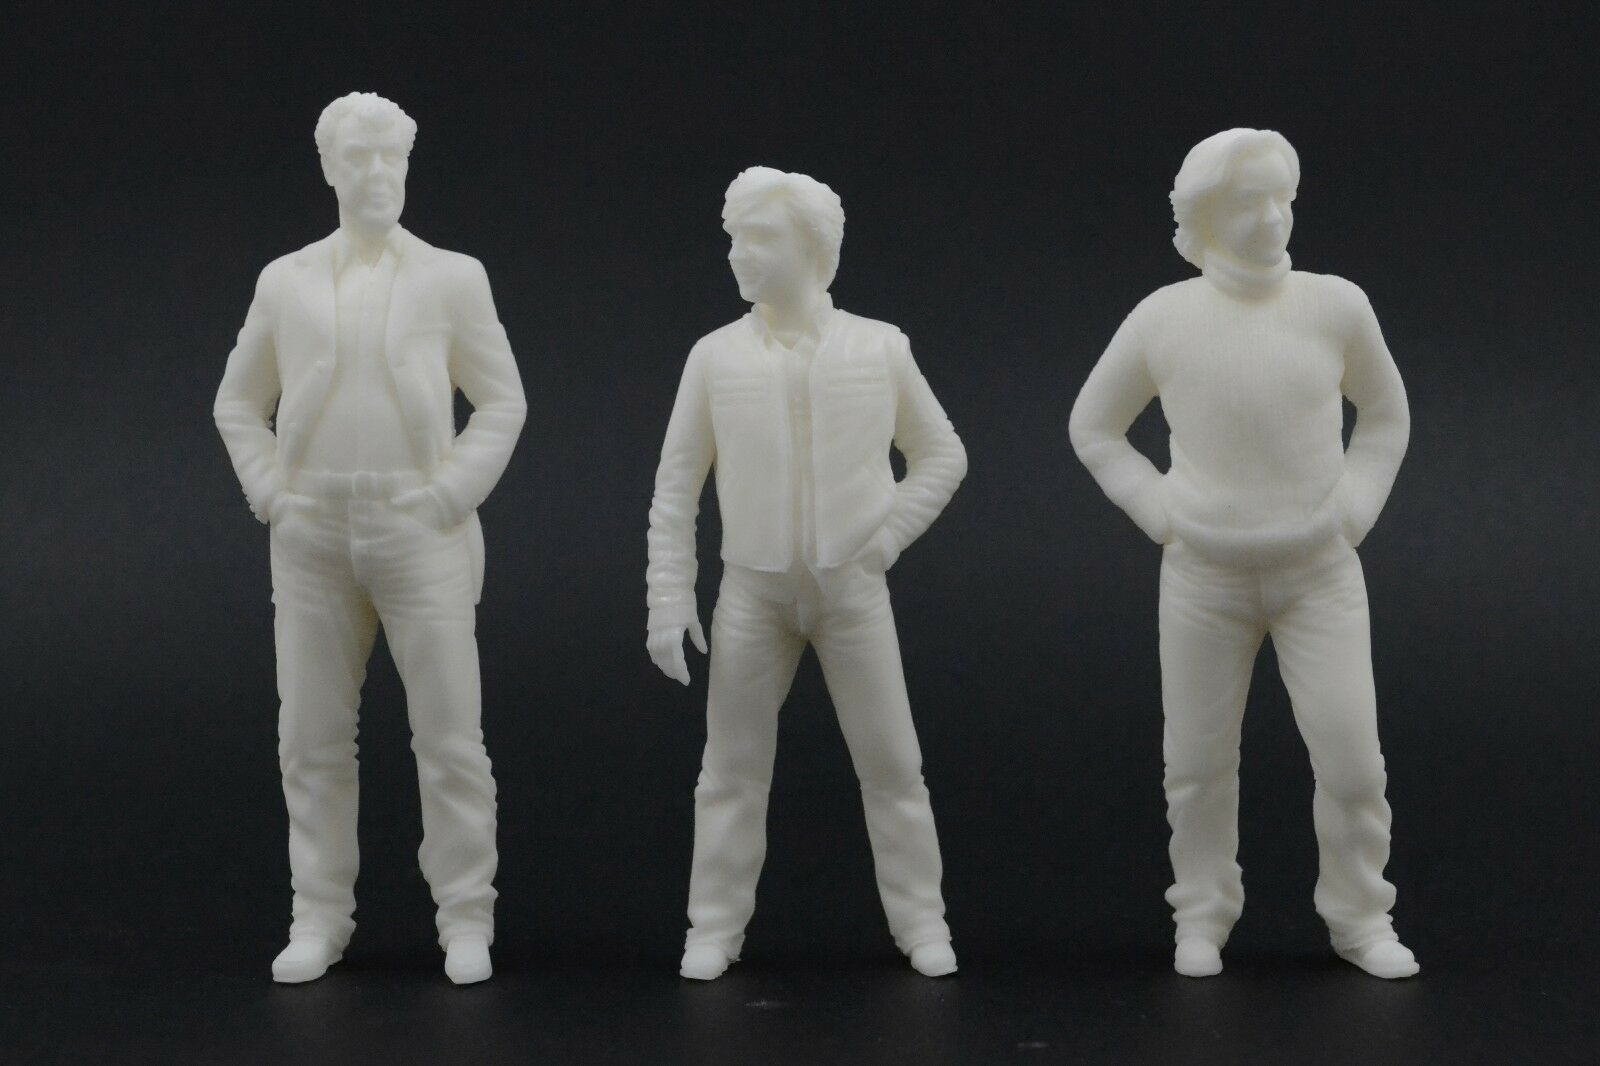 Clarkson & Hammond & May Figures for 1 18 Top Gear Grand Tour Mercedes AUTOart